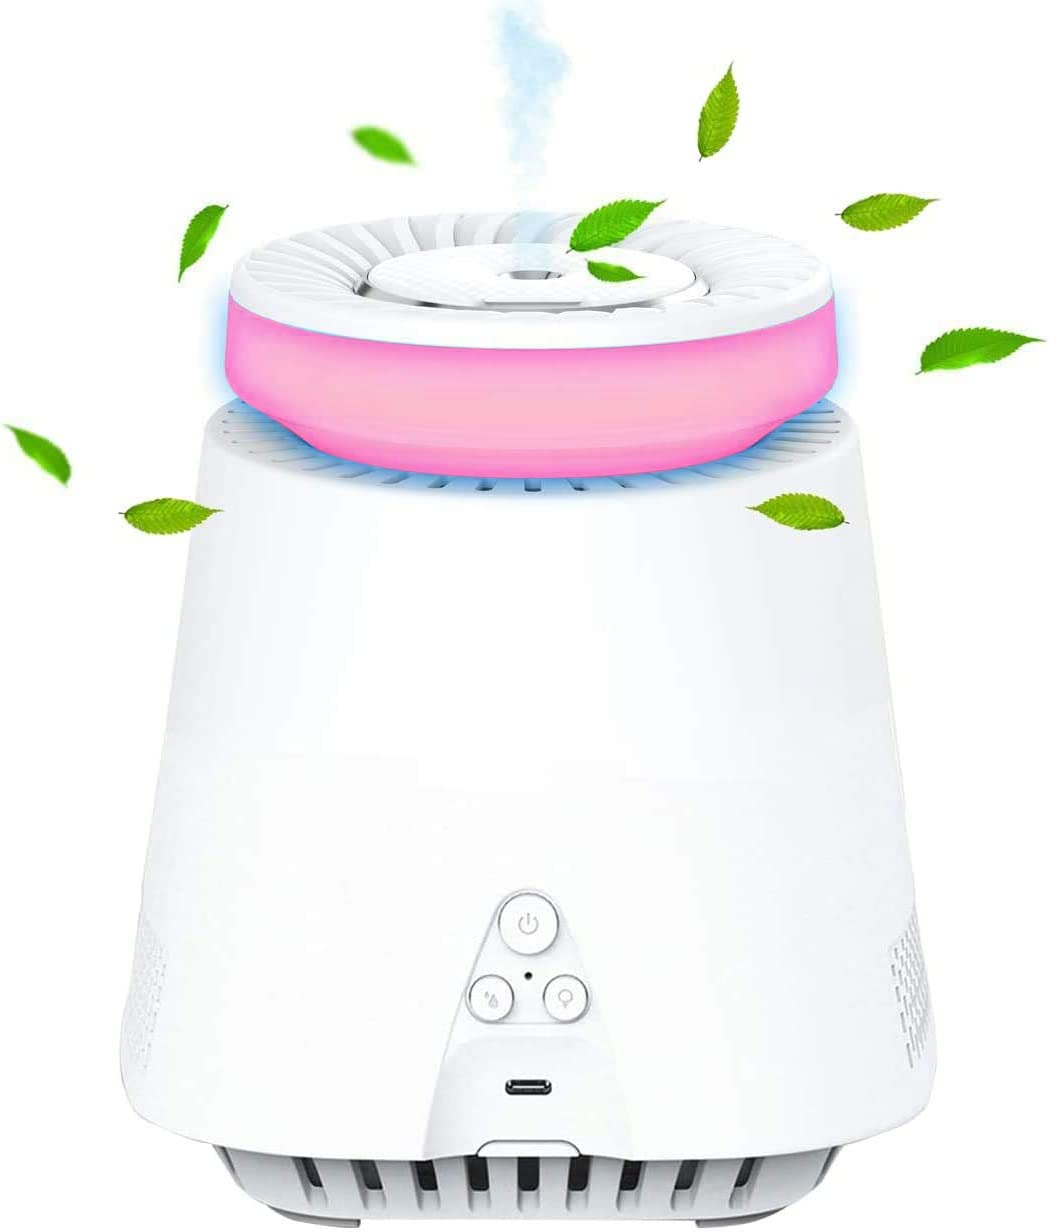 HEPA Air Purifier Portable 2-in-1, Low Noise Home Air Filtration with Mist Humidifier, Sleep Mode, Odors Dust, Bedroom Office, Night Light,Desktop USB Air Cleaner